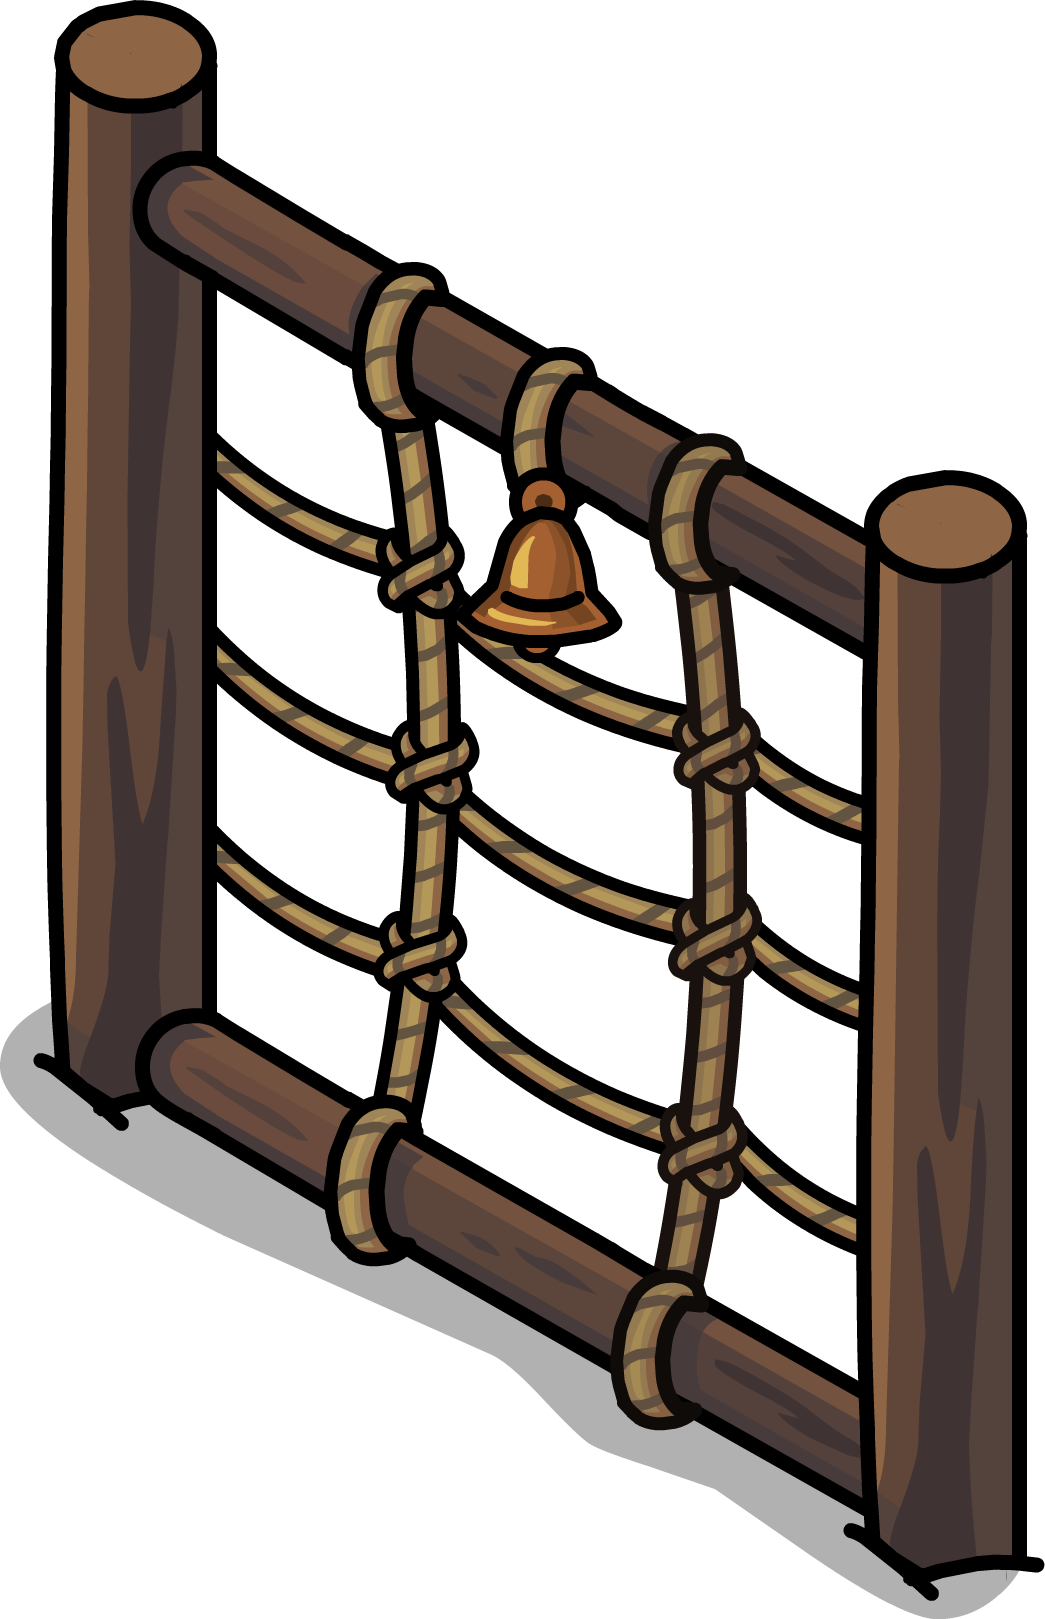 Rope clipart battle rope. Image climbing wall ig